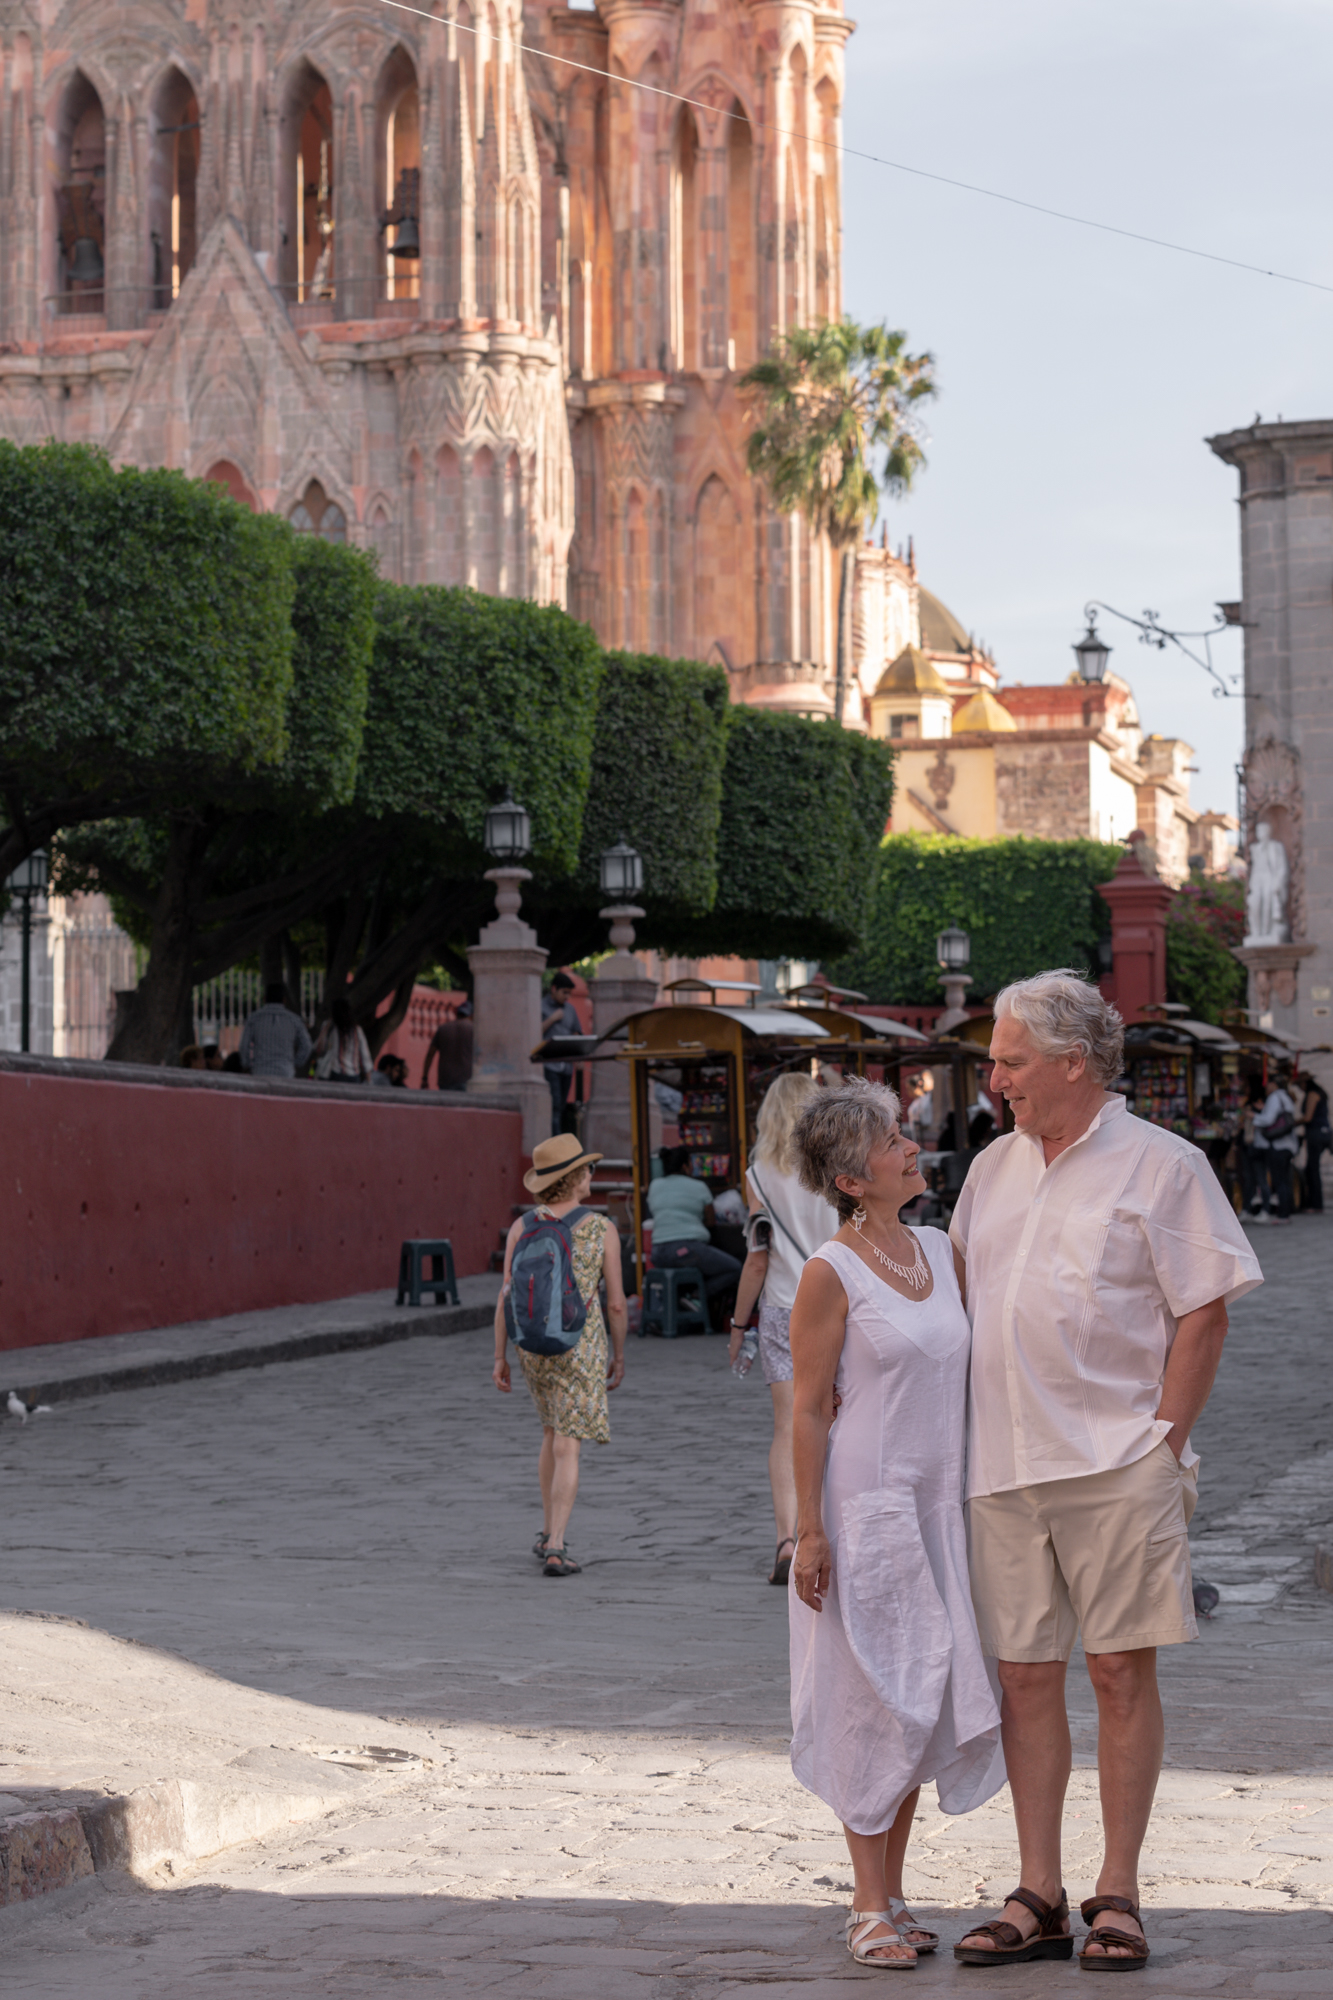 Photoshoot session in San Miguel de Allende with Suzanne and Leo-8.jpg